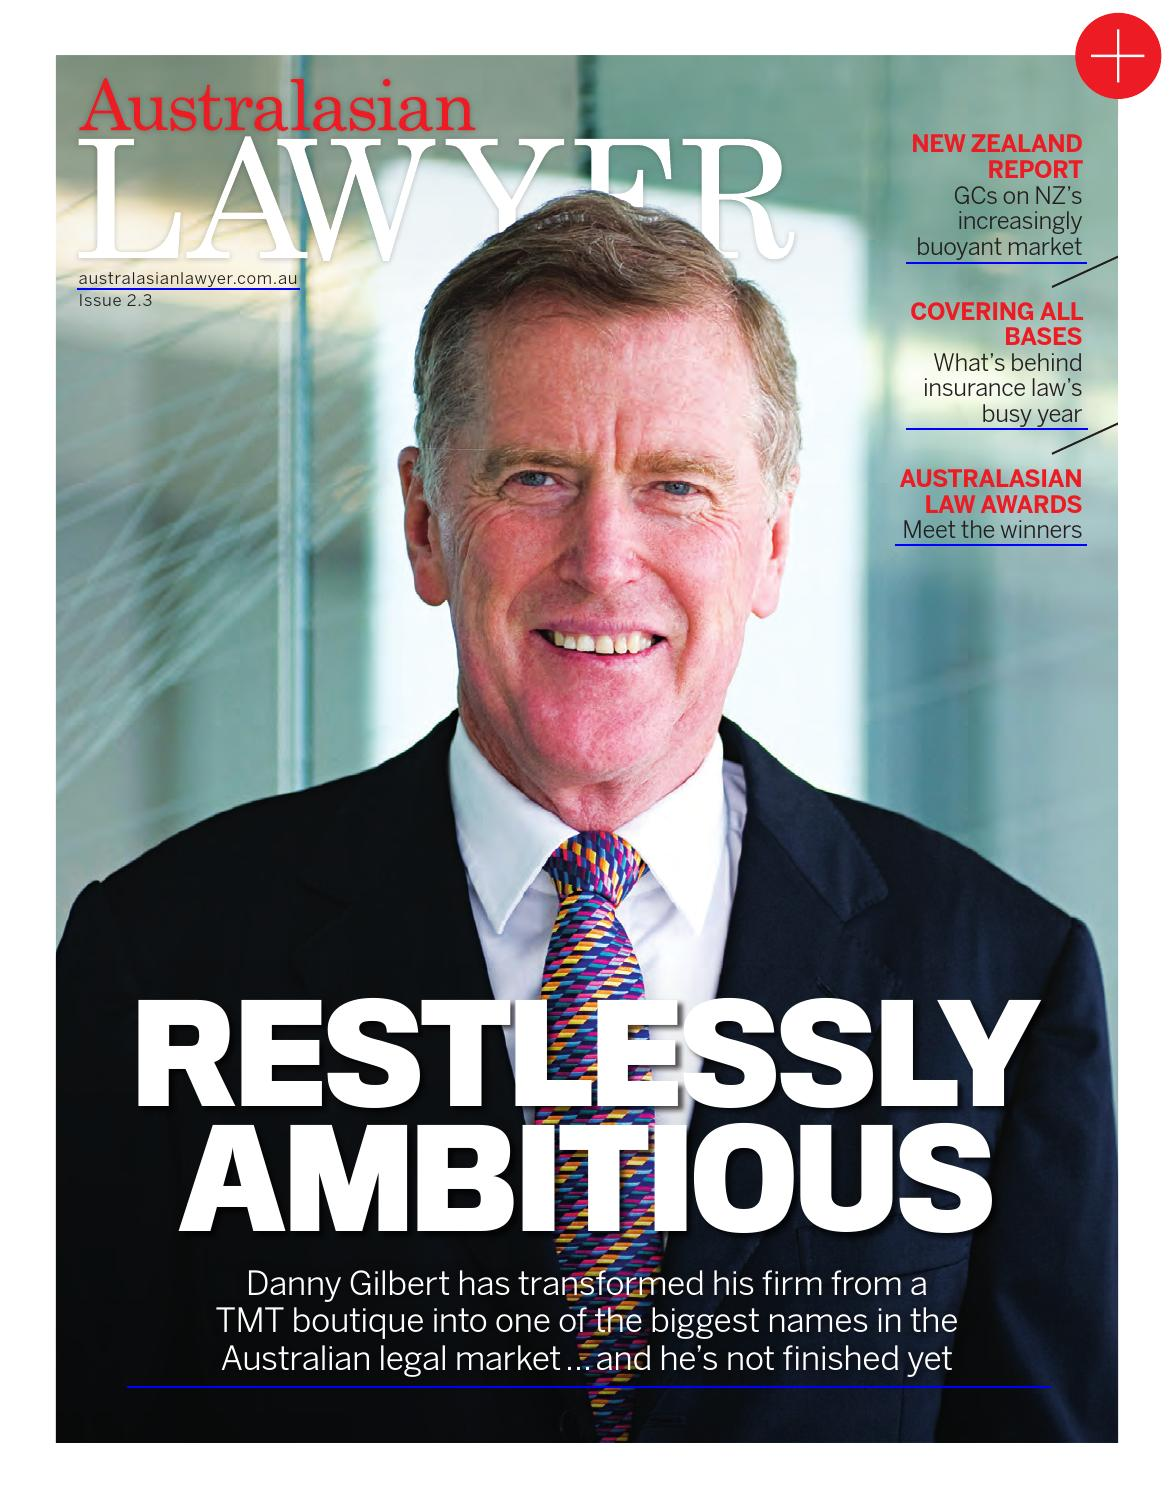 australasian lawyer issue by key media issuu australasian lawyer issue 2 03